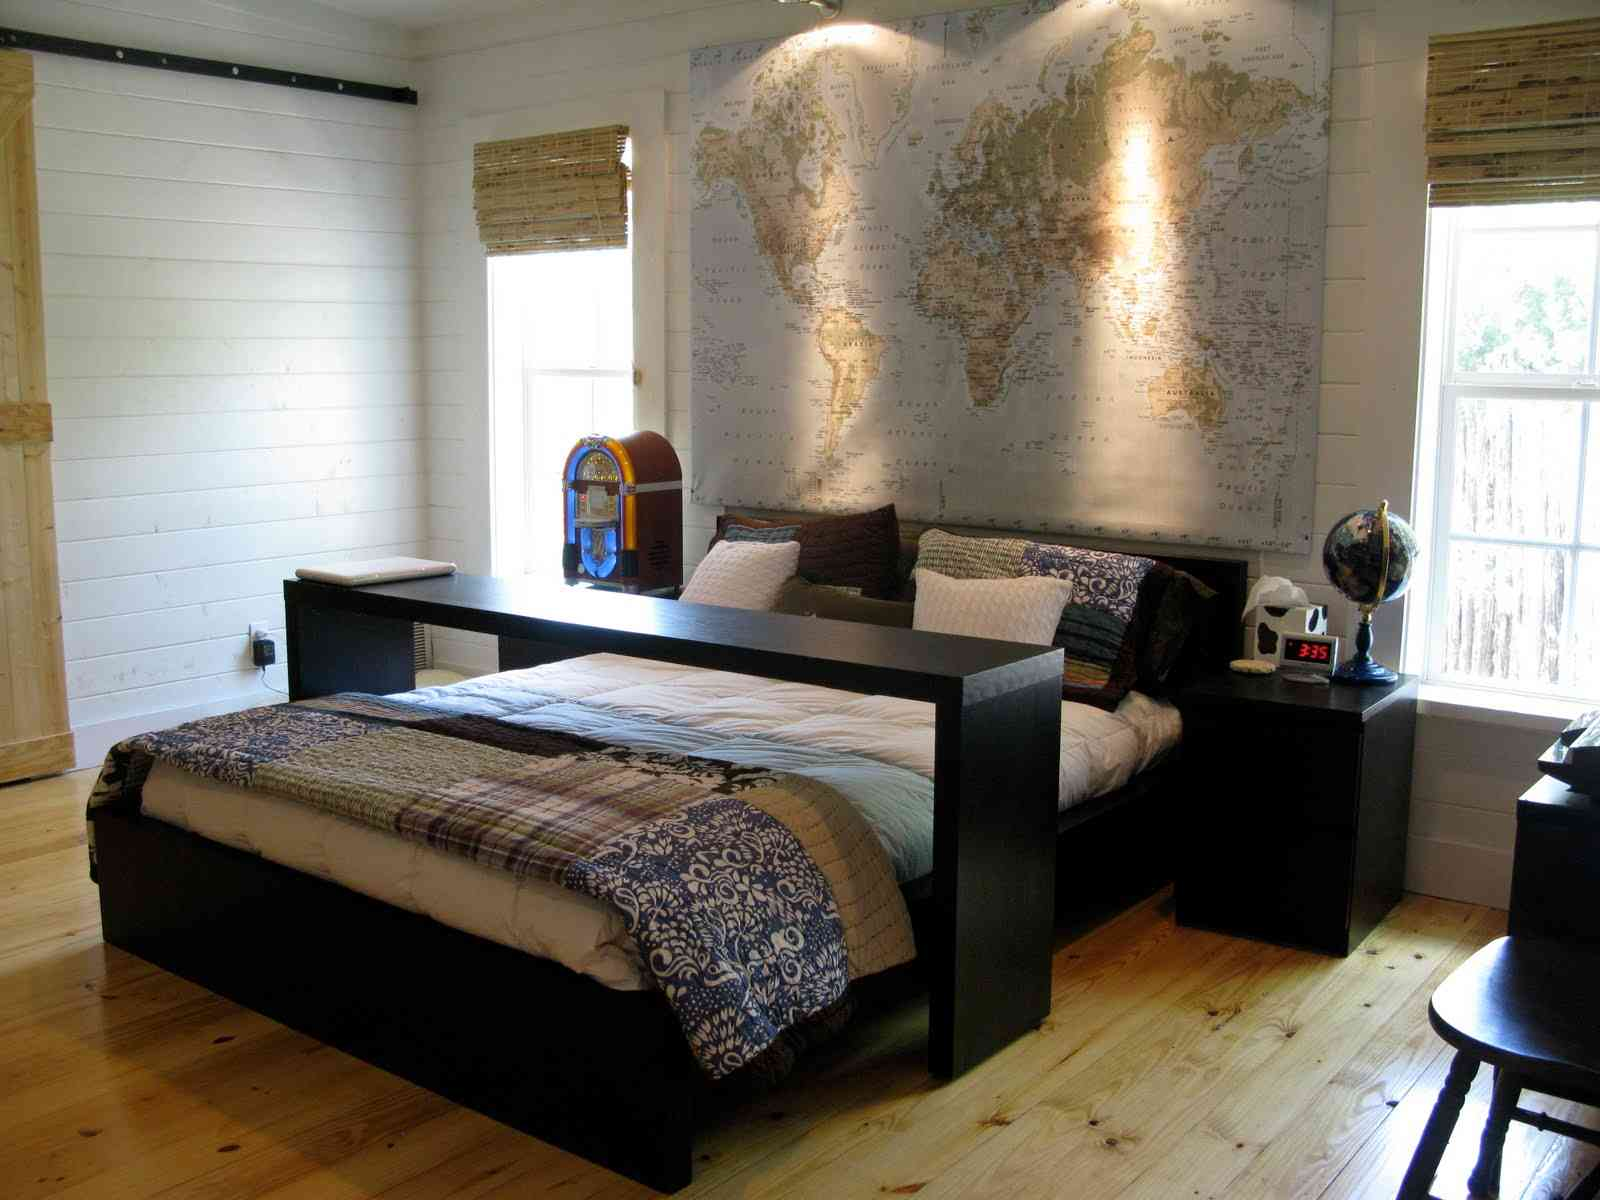 Bedroom furniture from ikea new bedroom 2015 home for Bedroom furniture beds